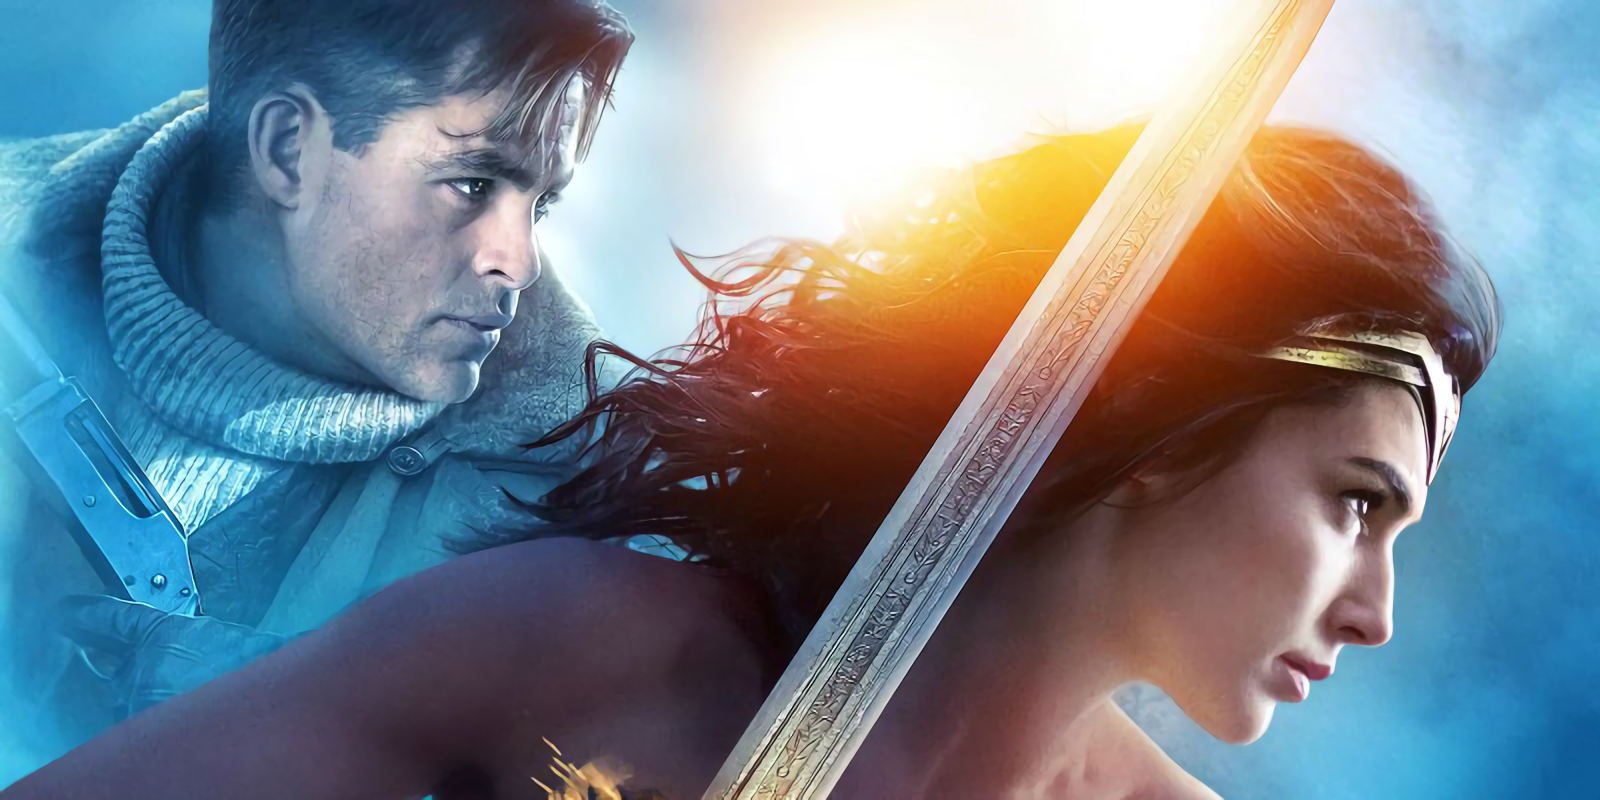 Gal Gadot and Chris Pine in Wonder Woman poster